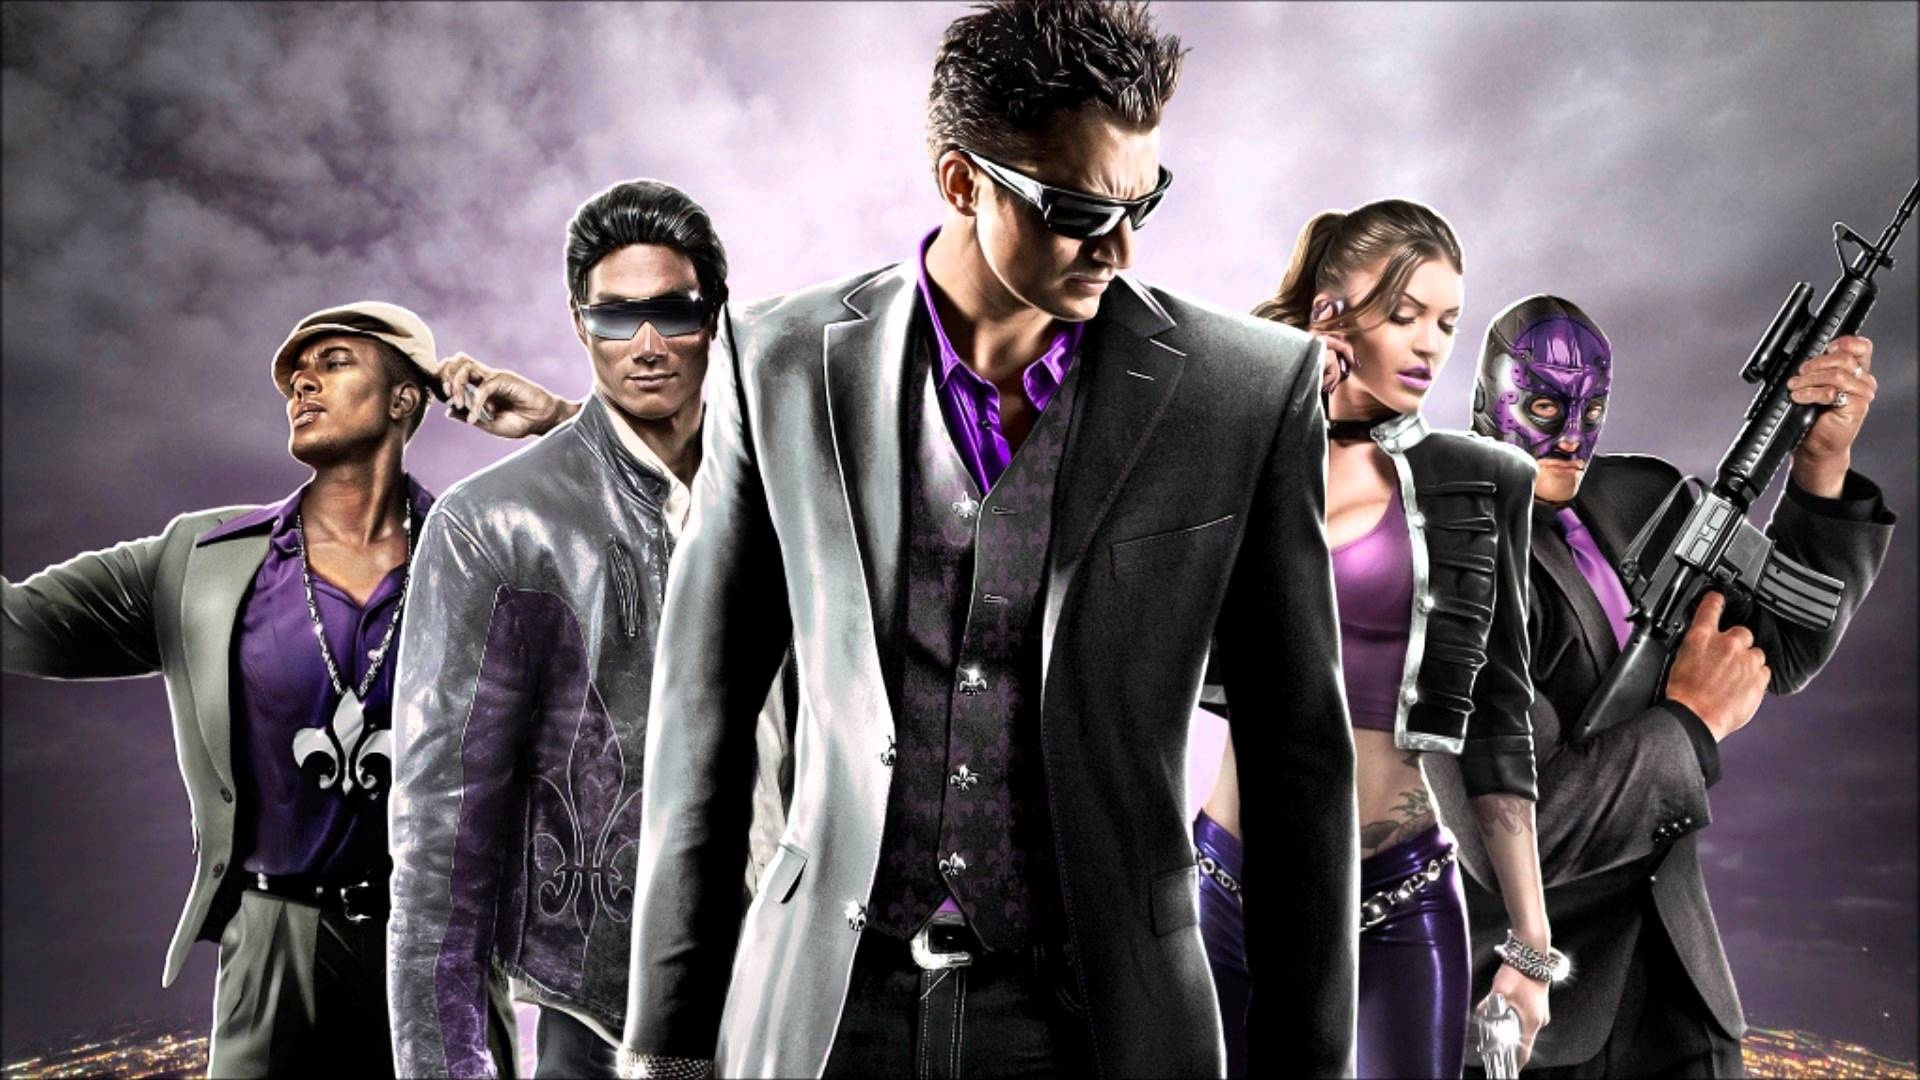 Saints Row IV HD Wallpapers and Background Images